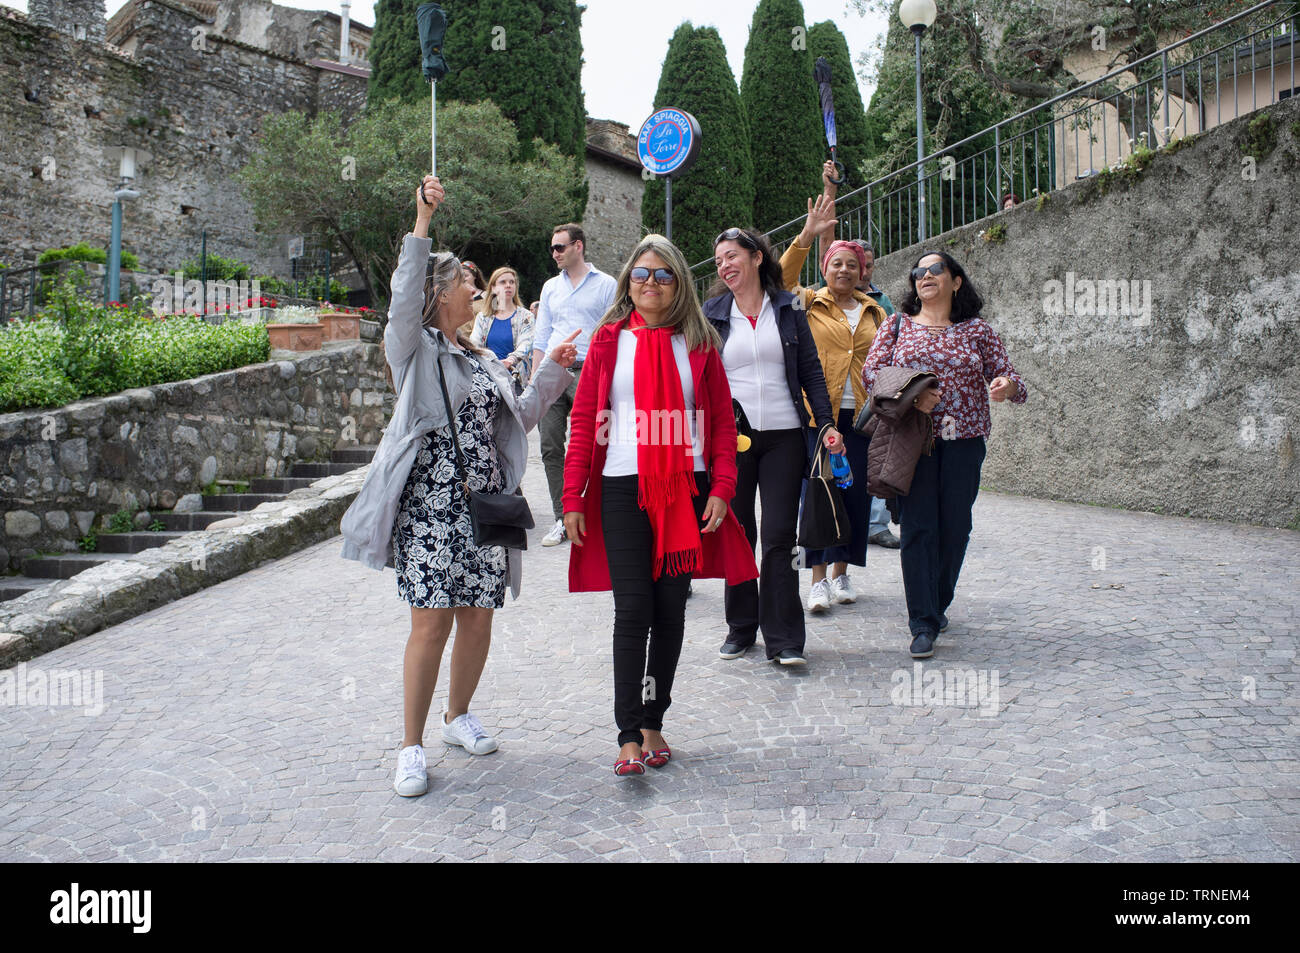 18 may 2019 - Sirmione, Lake Garda, Italy - Happy group of Brazilian tourist, walking with a tour guide - Stock Image